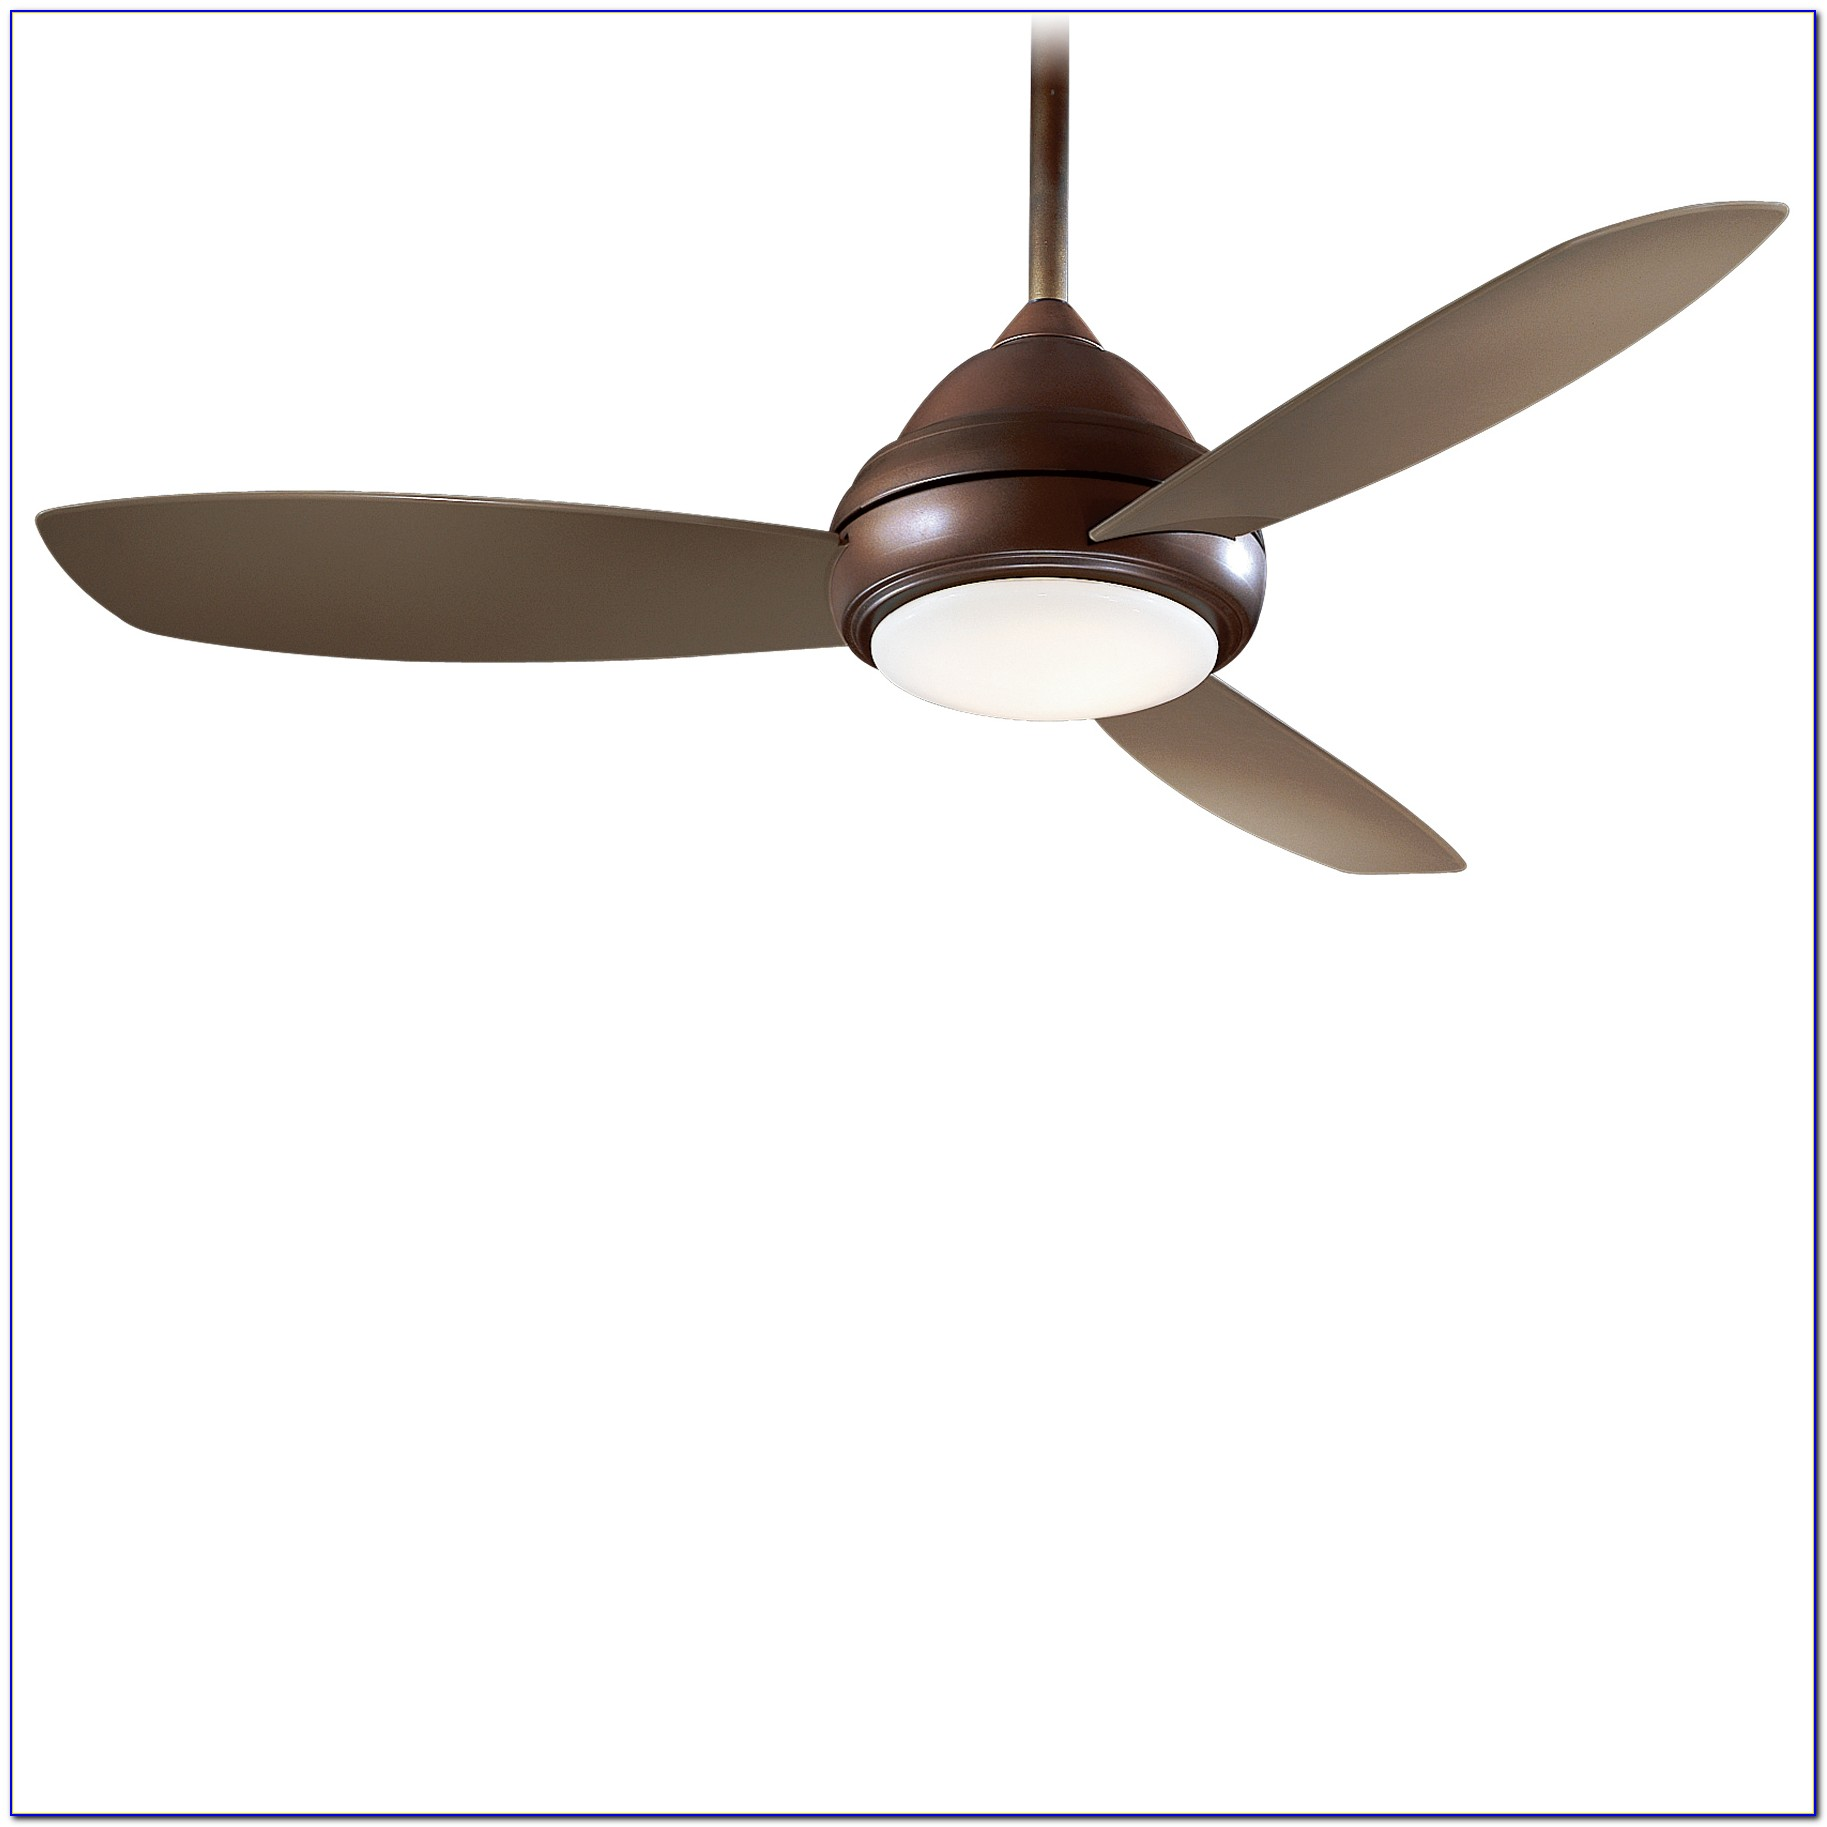 Minka Aire Simple Ceiling Fan With Light